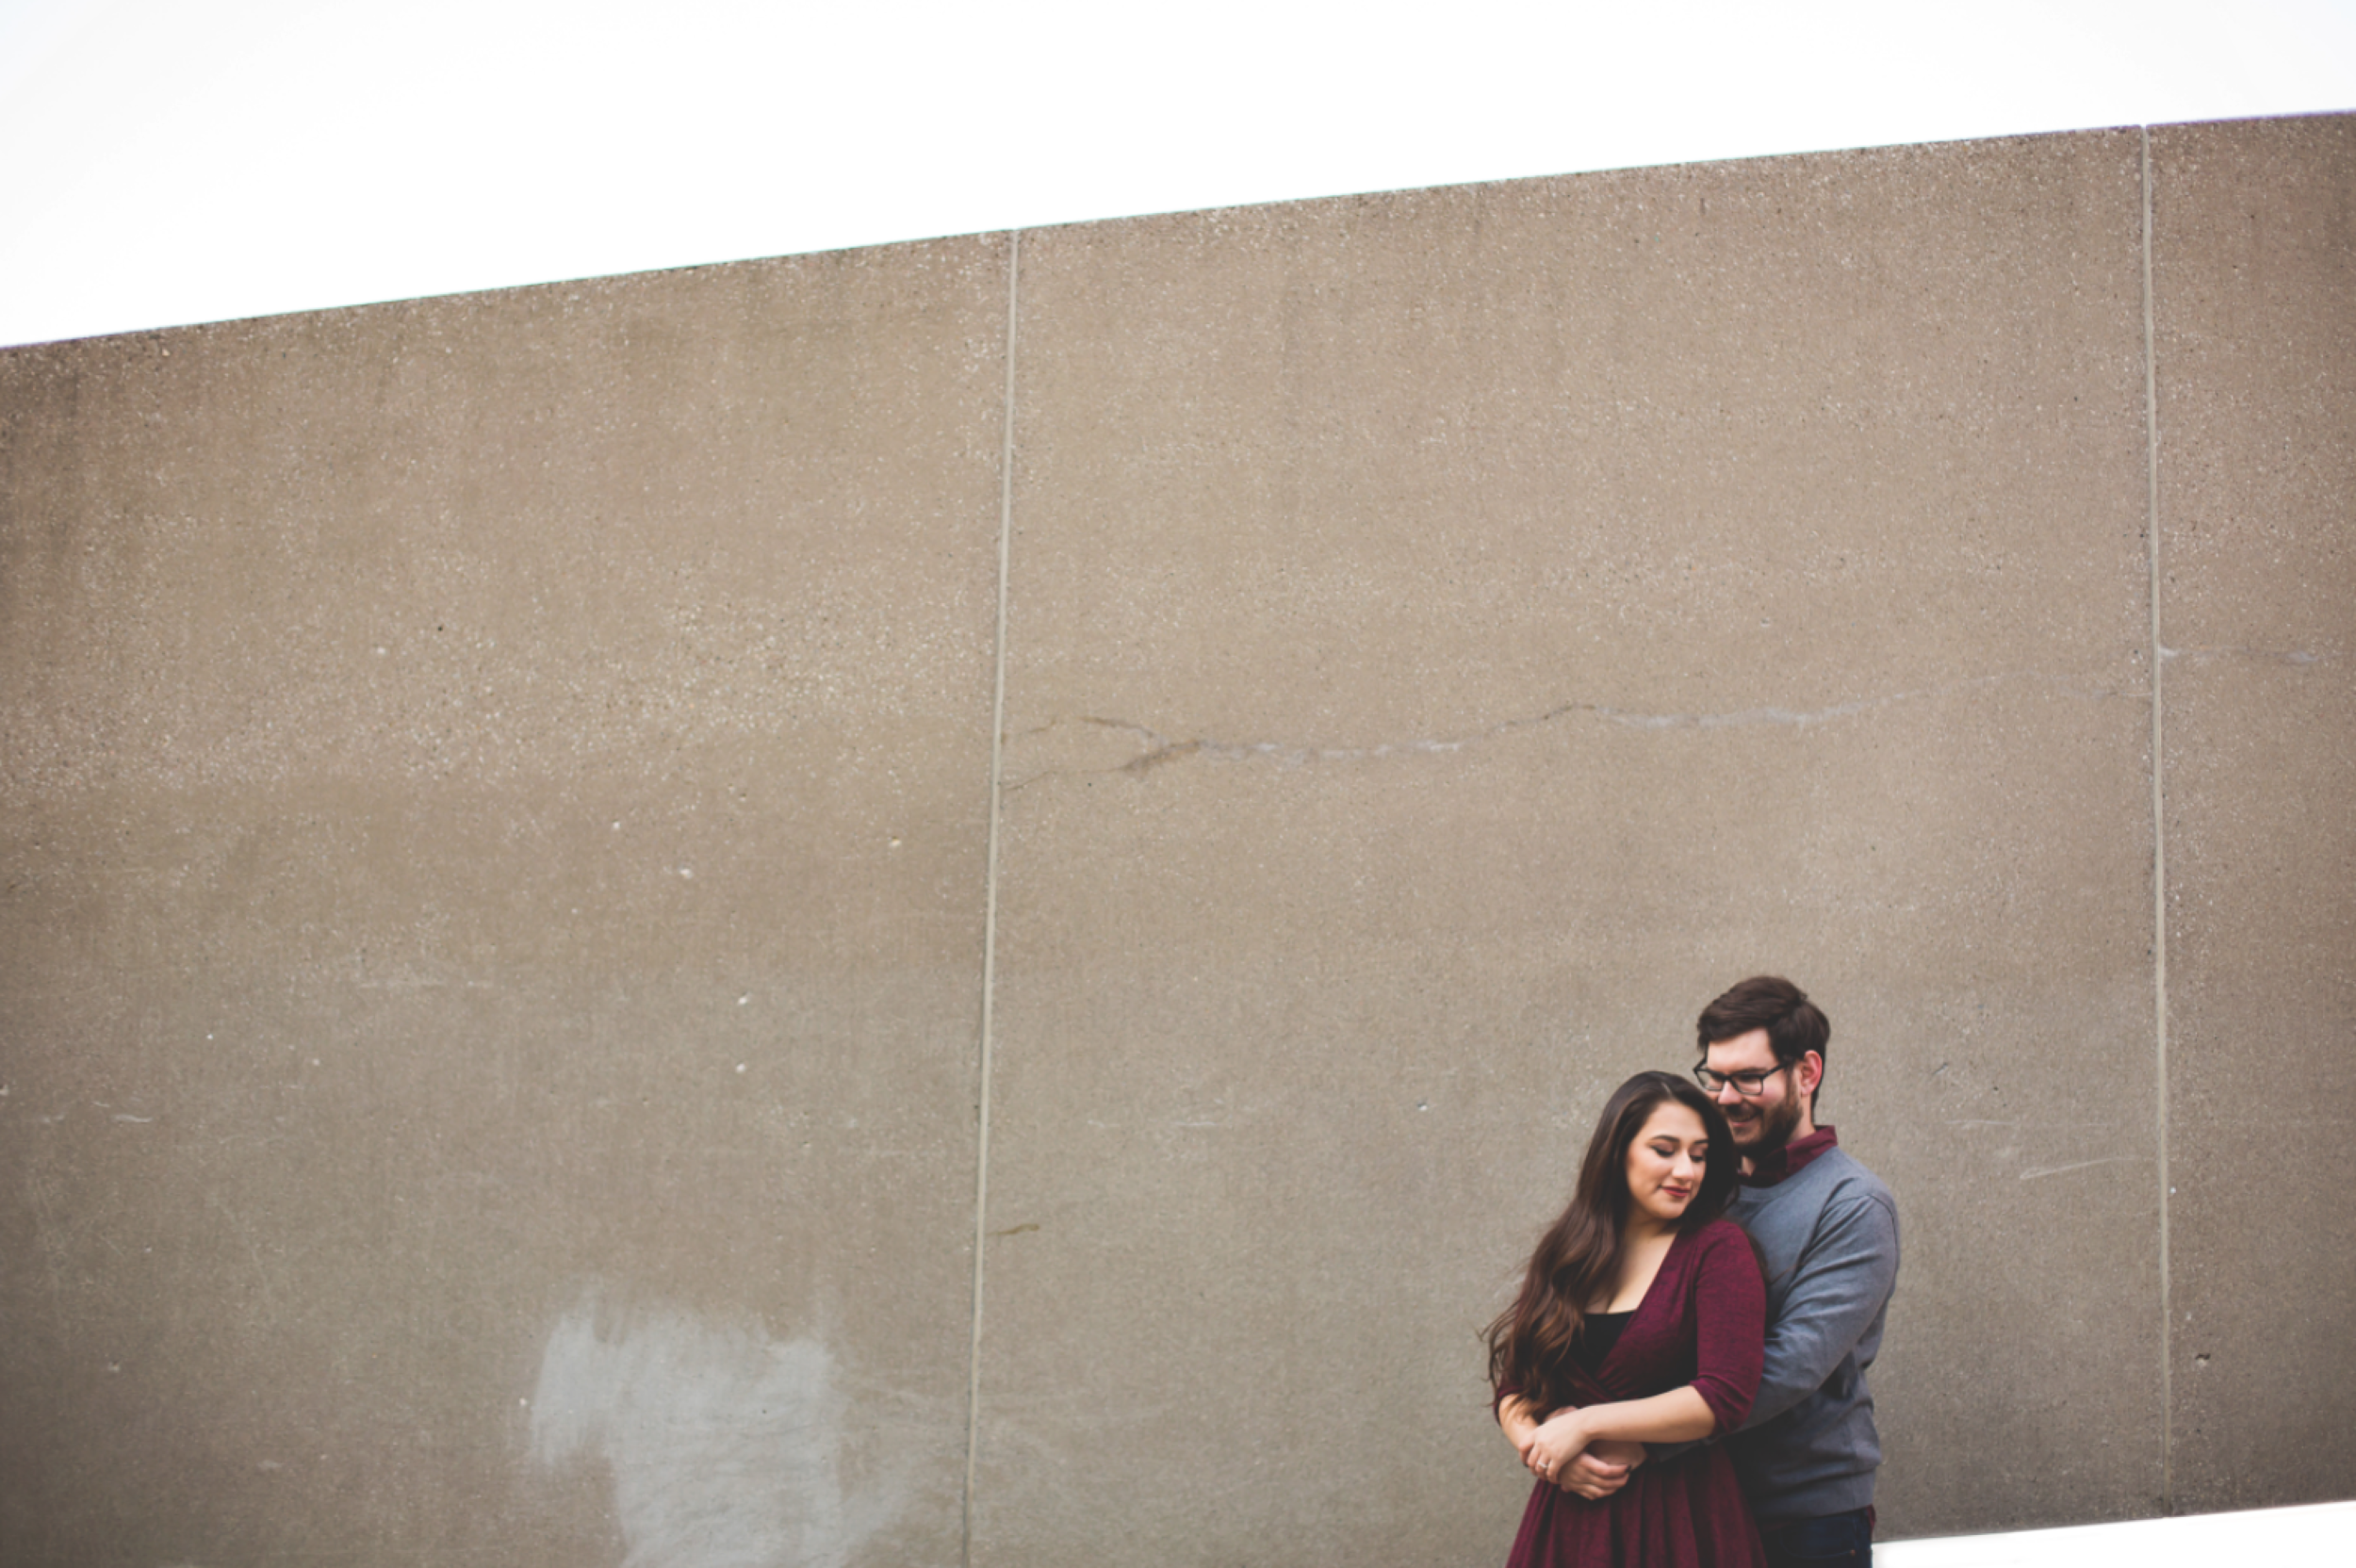 Engagement-Session-Hamilton-Burlington-Oakville-Niagara-Toronto-Wedding-Photographer-Engaged-Photography-Urban-Engaged-Downtown-Golden-Hour-Moments-by-Lauren-Photo-Image-19.png